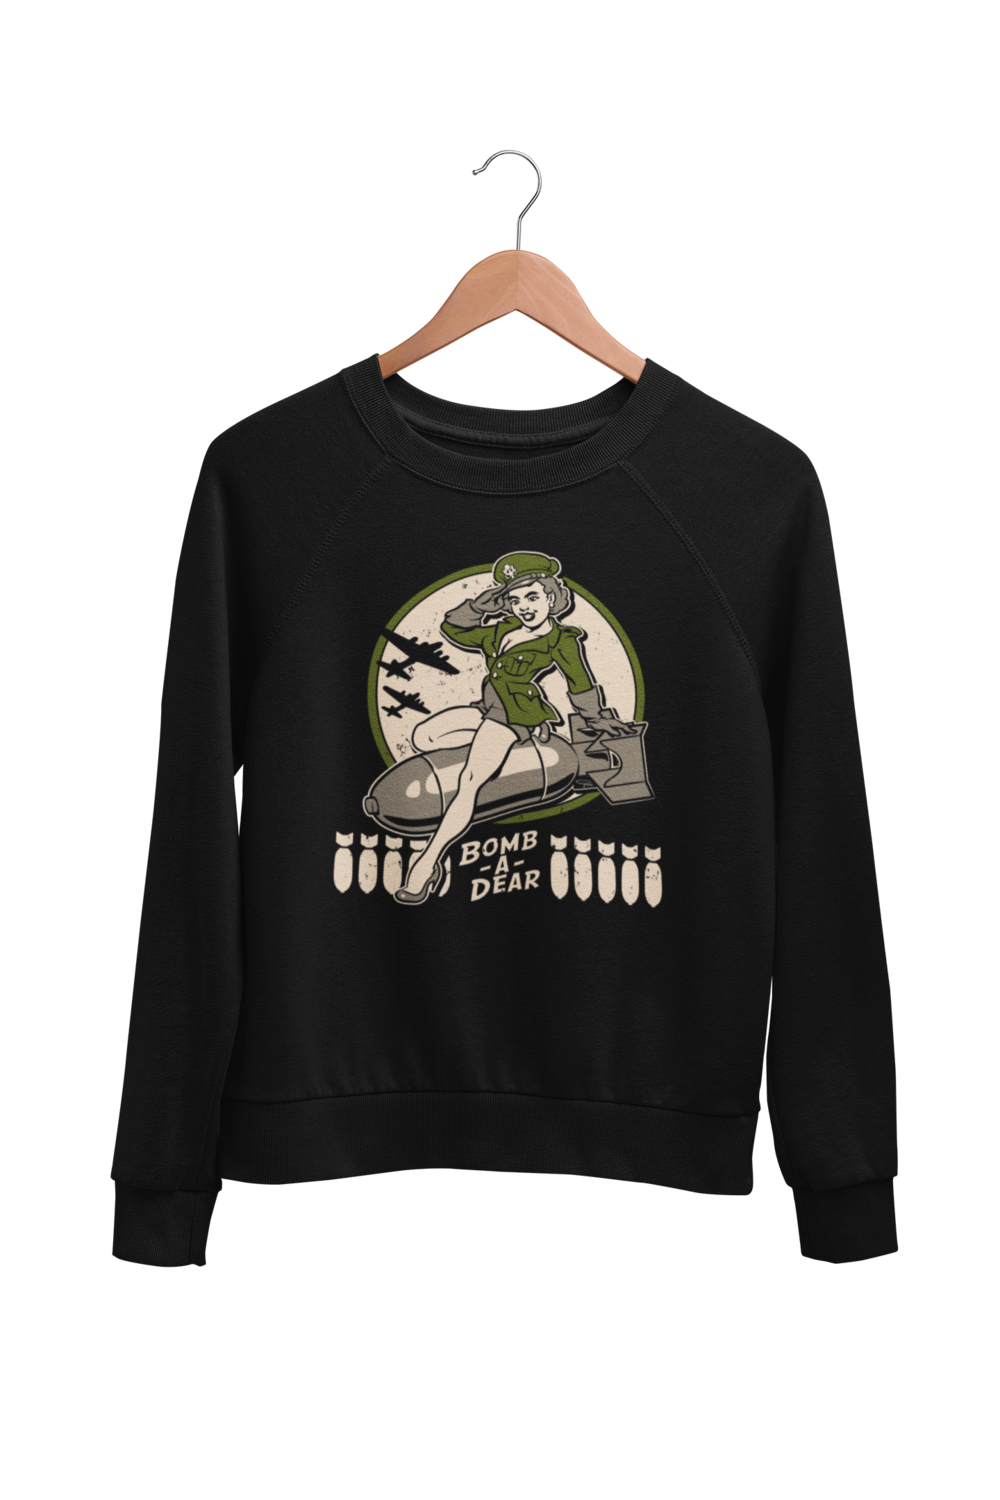 "BOMB A DEAR SWEATSHIRT UNISEX by BY Ger ""Dutch Courage"" Peters artwork"